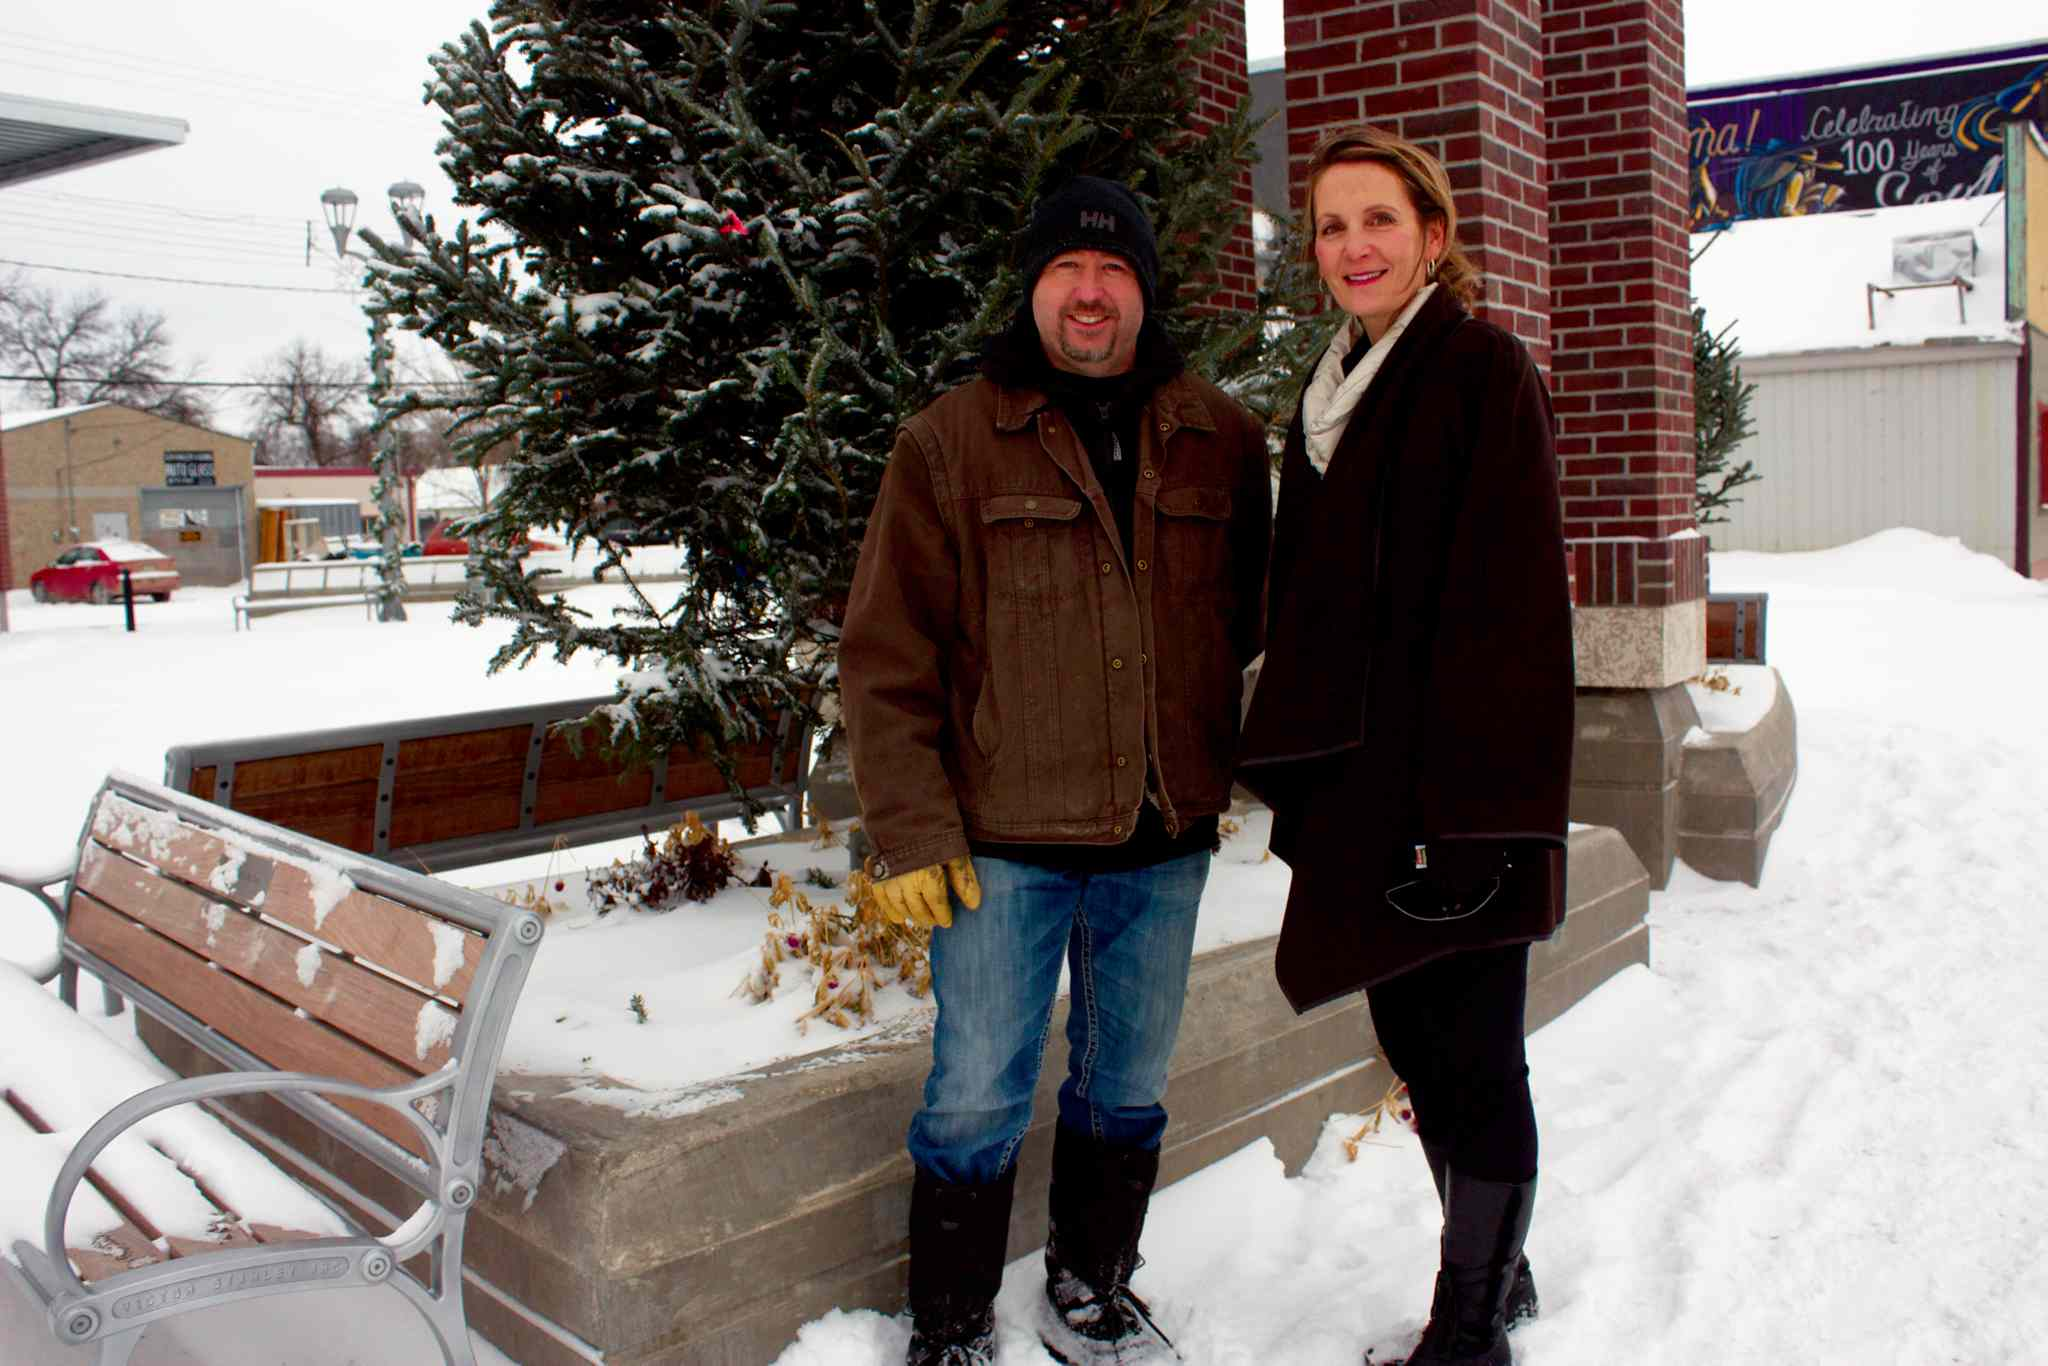 Transcona BIZ executive director Wendy Galagan (right) and president Rick Purling are excited to host a Winter Wonderland event at Transcona Centennial Square.